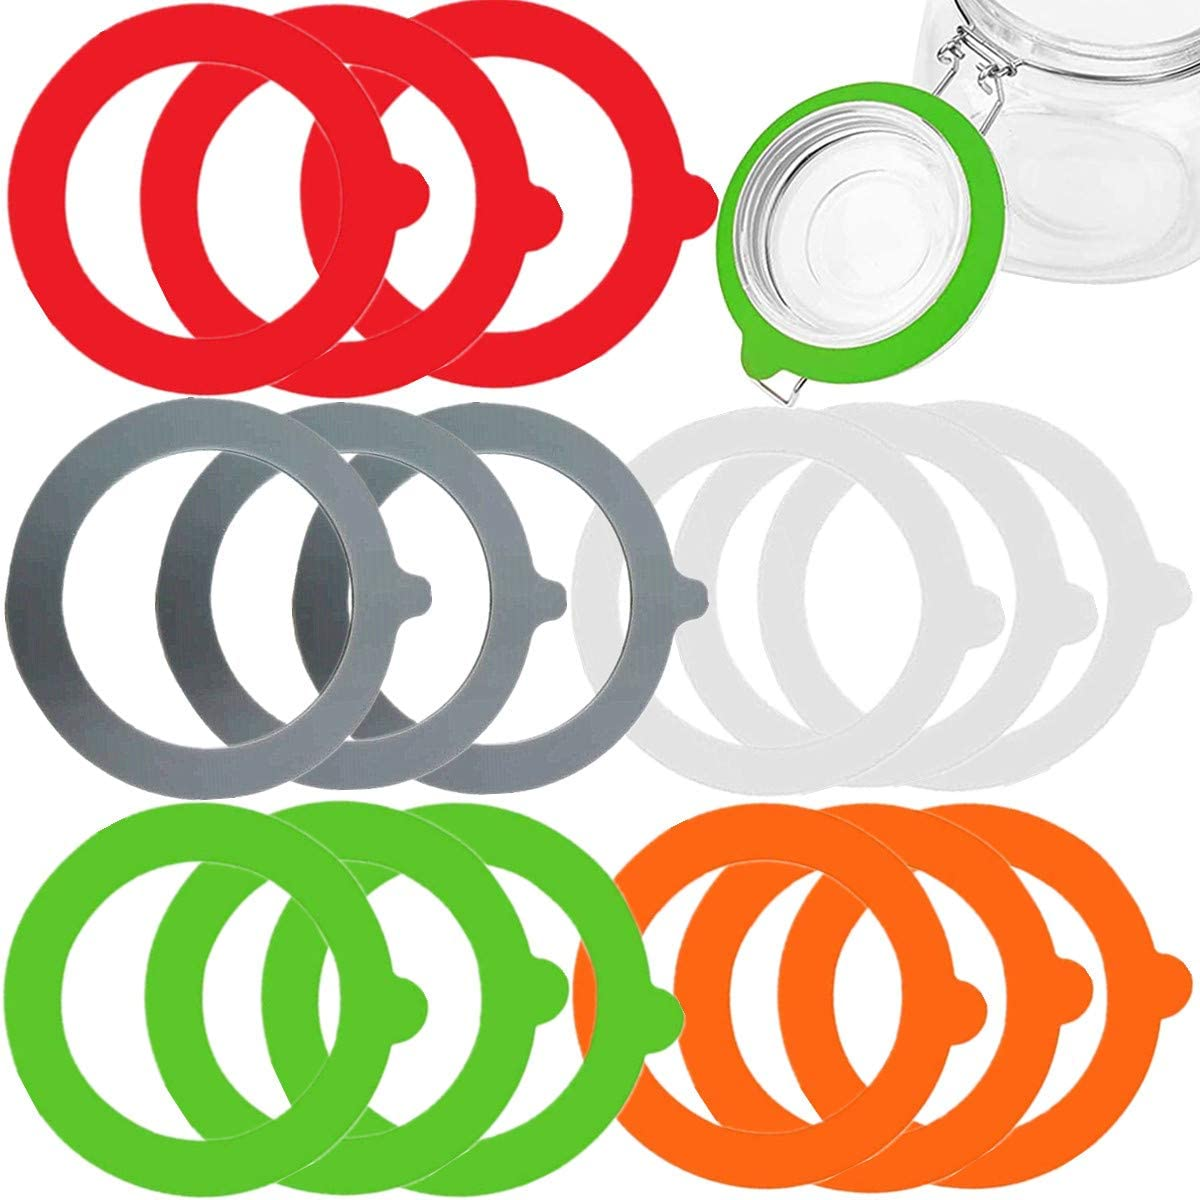 15 Pieces Silicone Replacement Gaskets Airtight Rubber Seals Rings for Mason Canning Tank Jar Lids Sealing Ring Red Orange Green Gray White